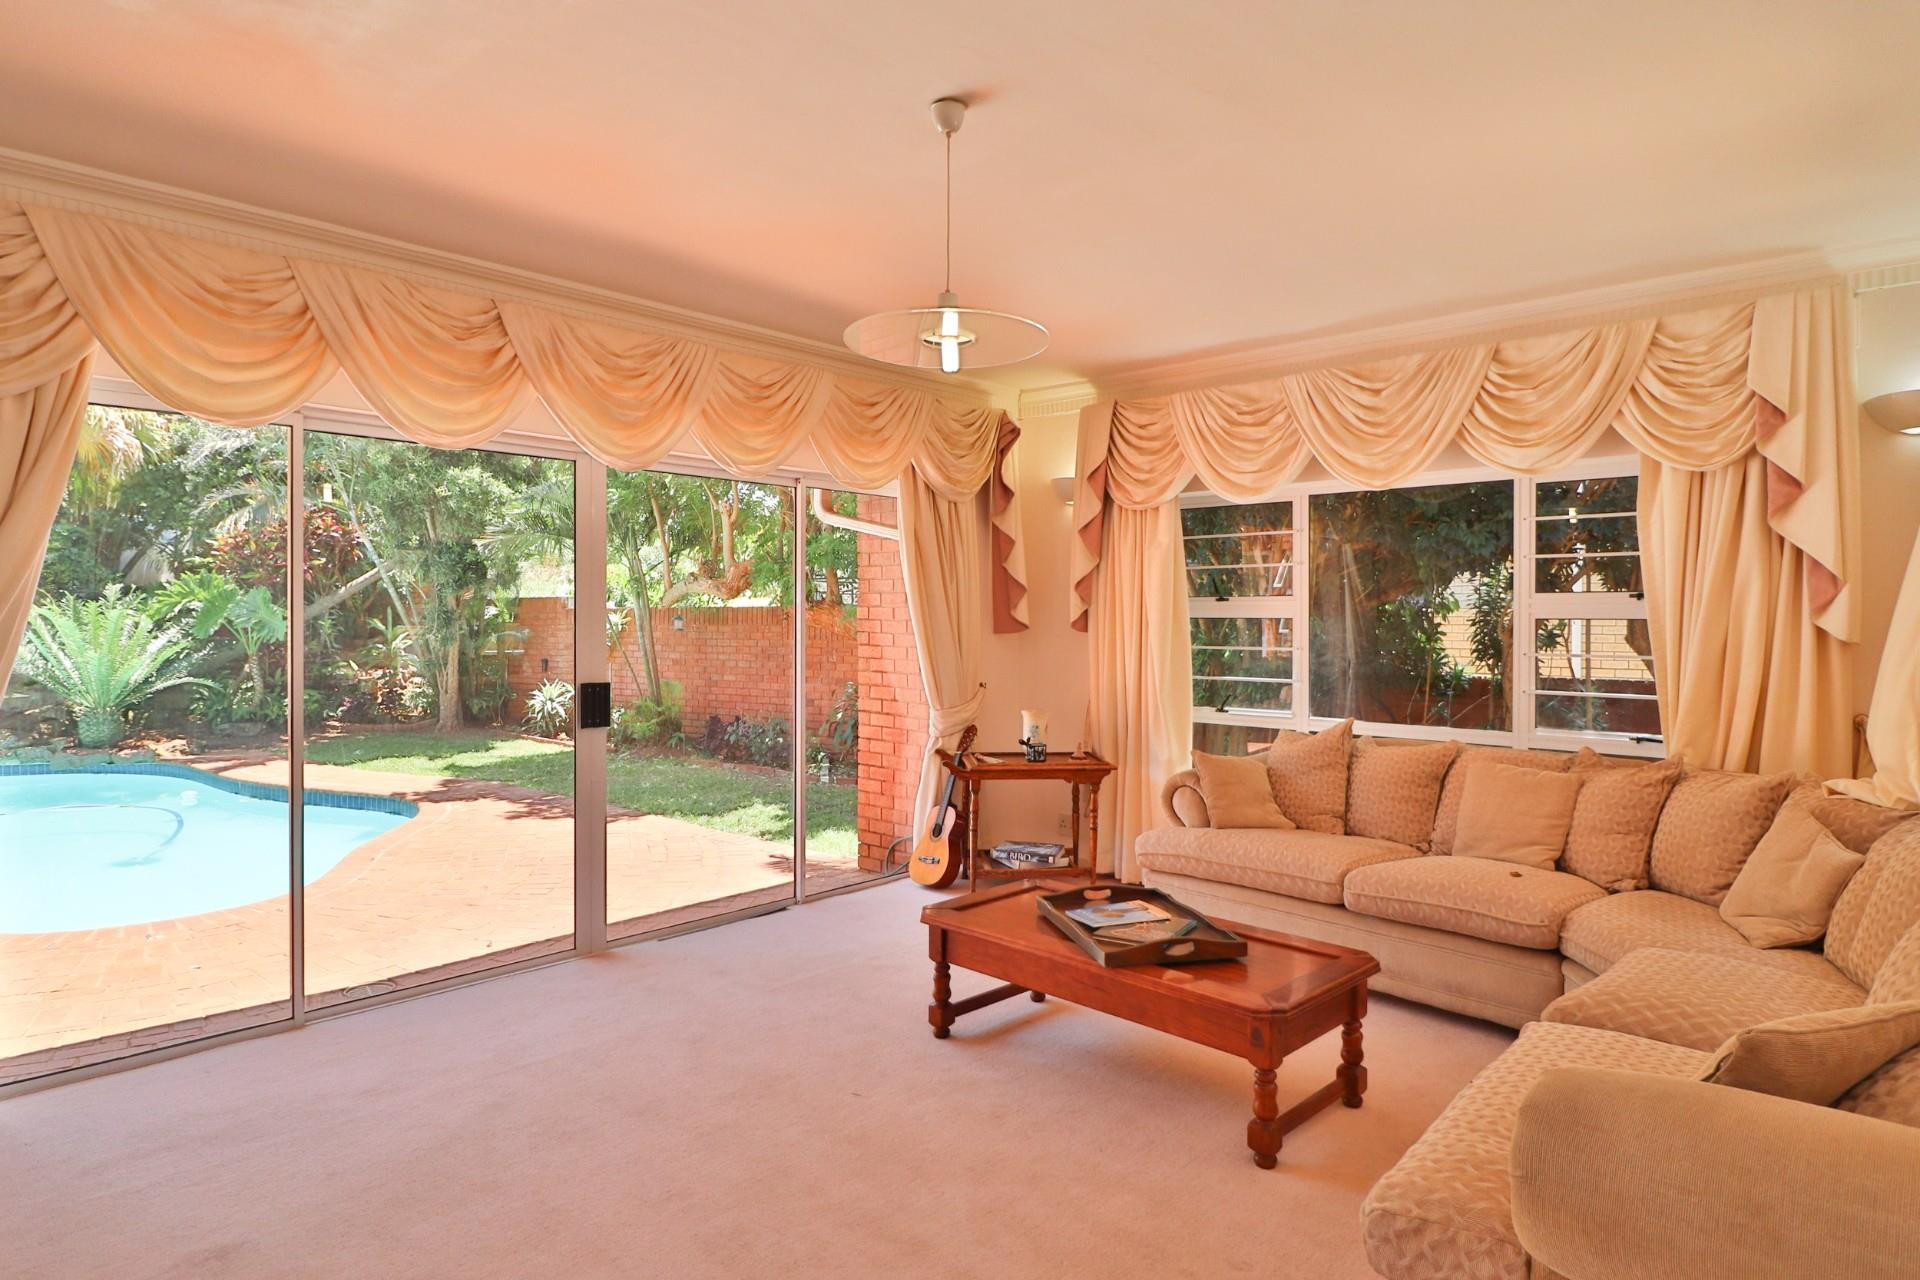 4 Bedroom House For Sale in Herrwood Park